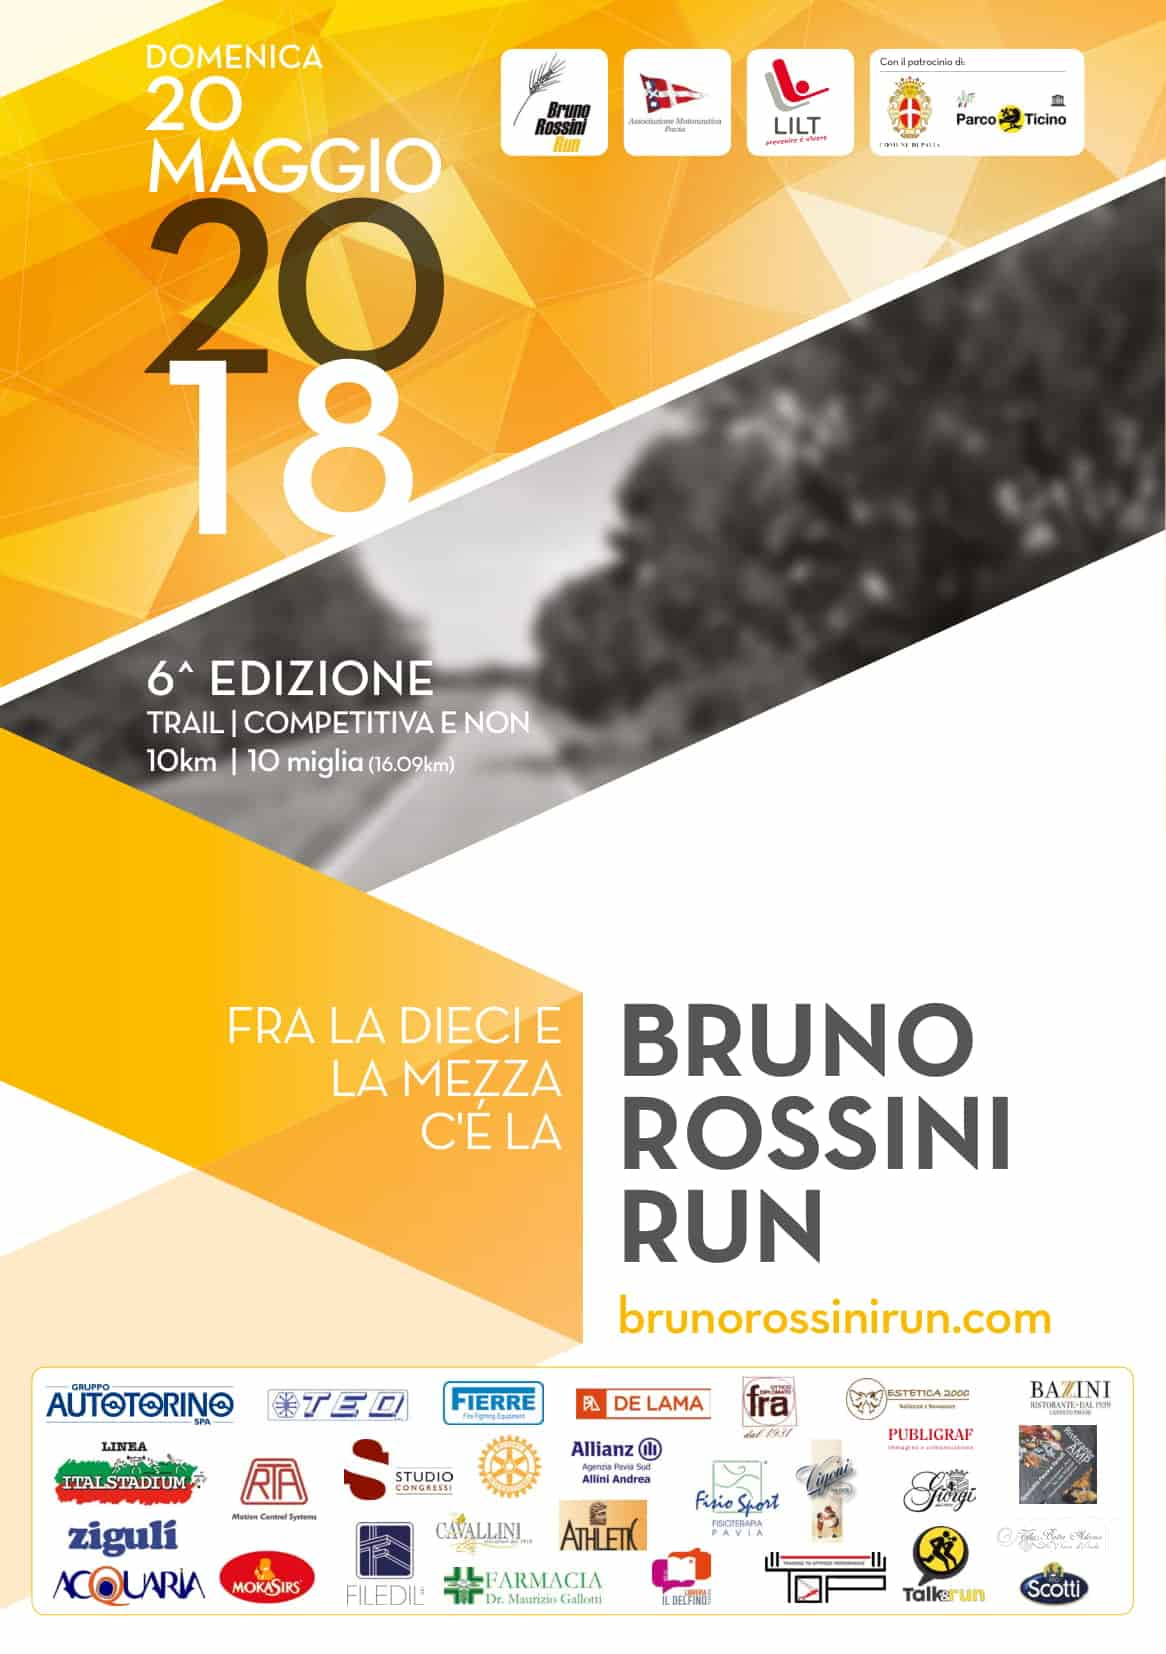 Bruno Rossini Run 2018